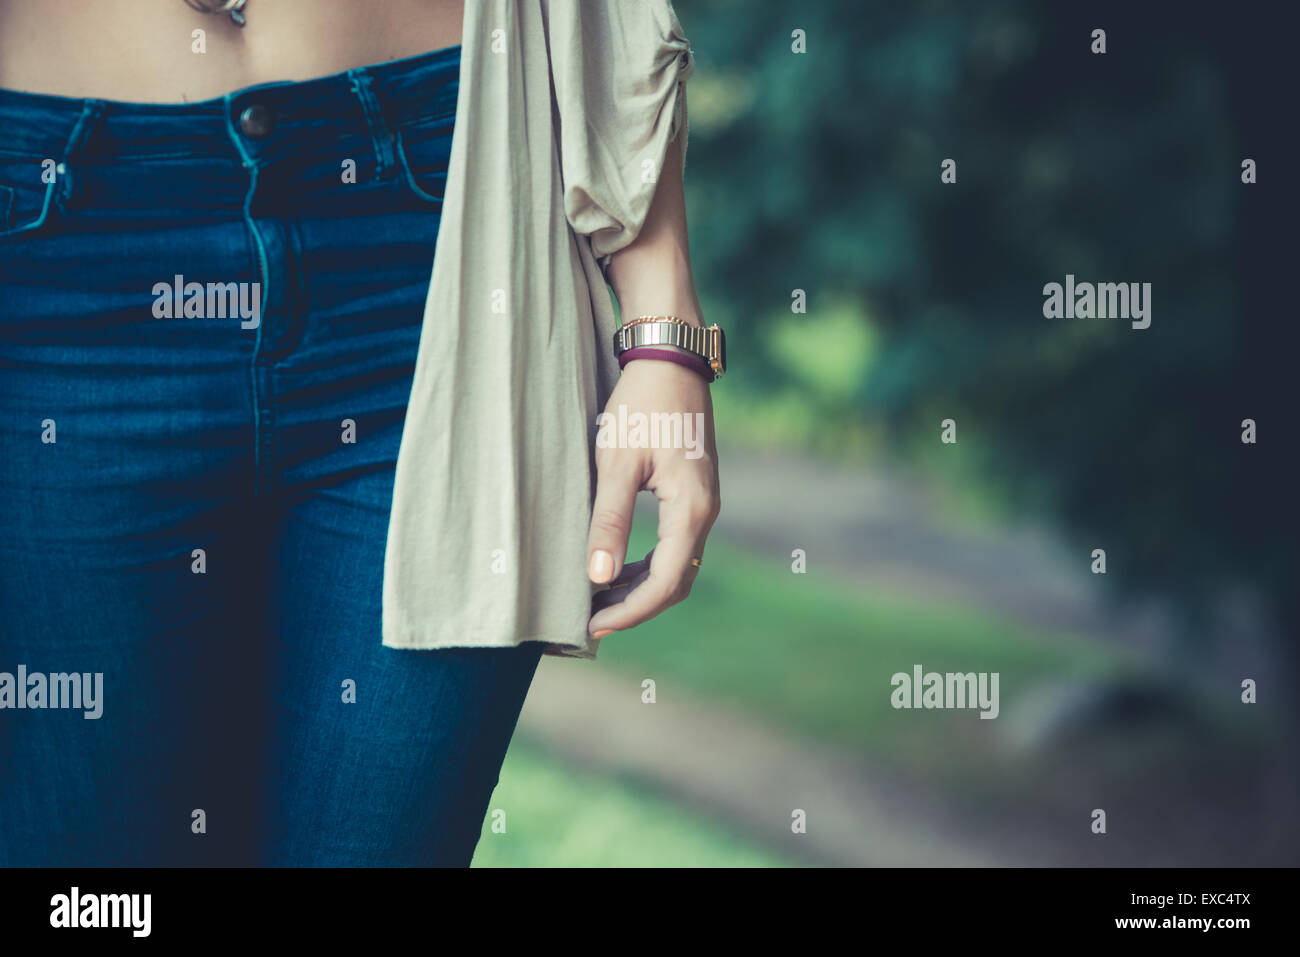 close up of belly button of young woman outdoor - Stock Image